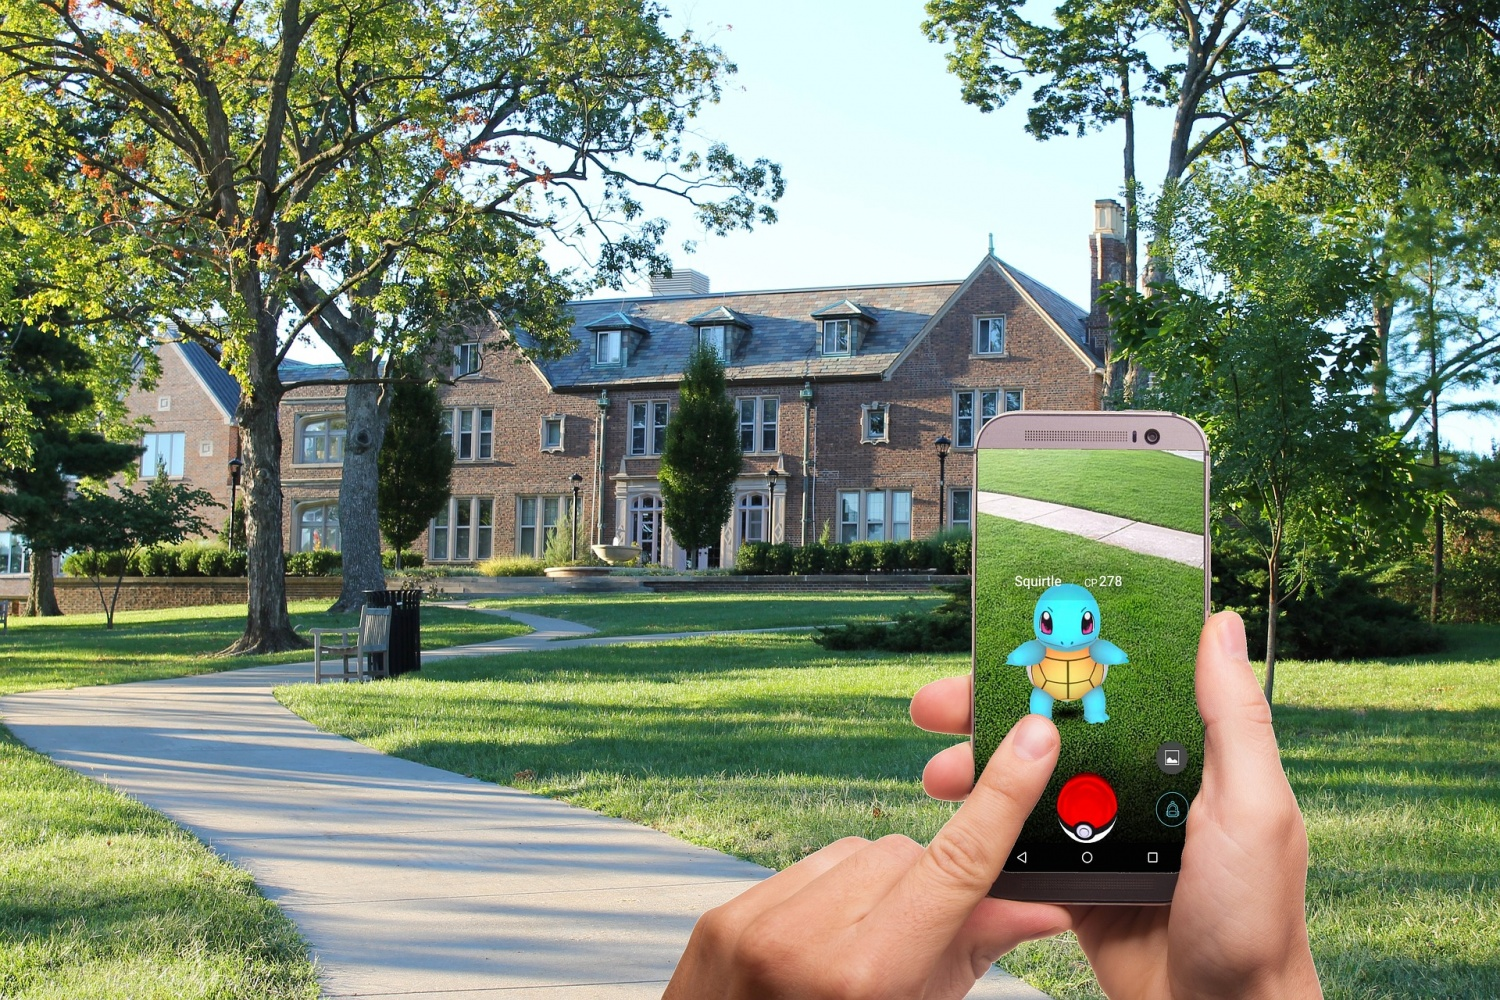 POKÉMON GO Hack and Update: Attending A Buddy Up Event This Year But Stuck Home? Here's How to Do It Remotely!